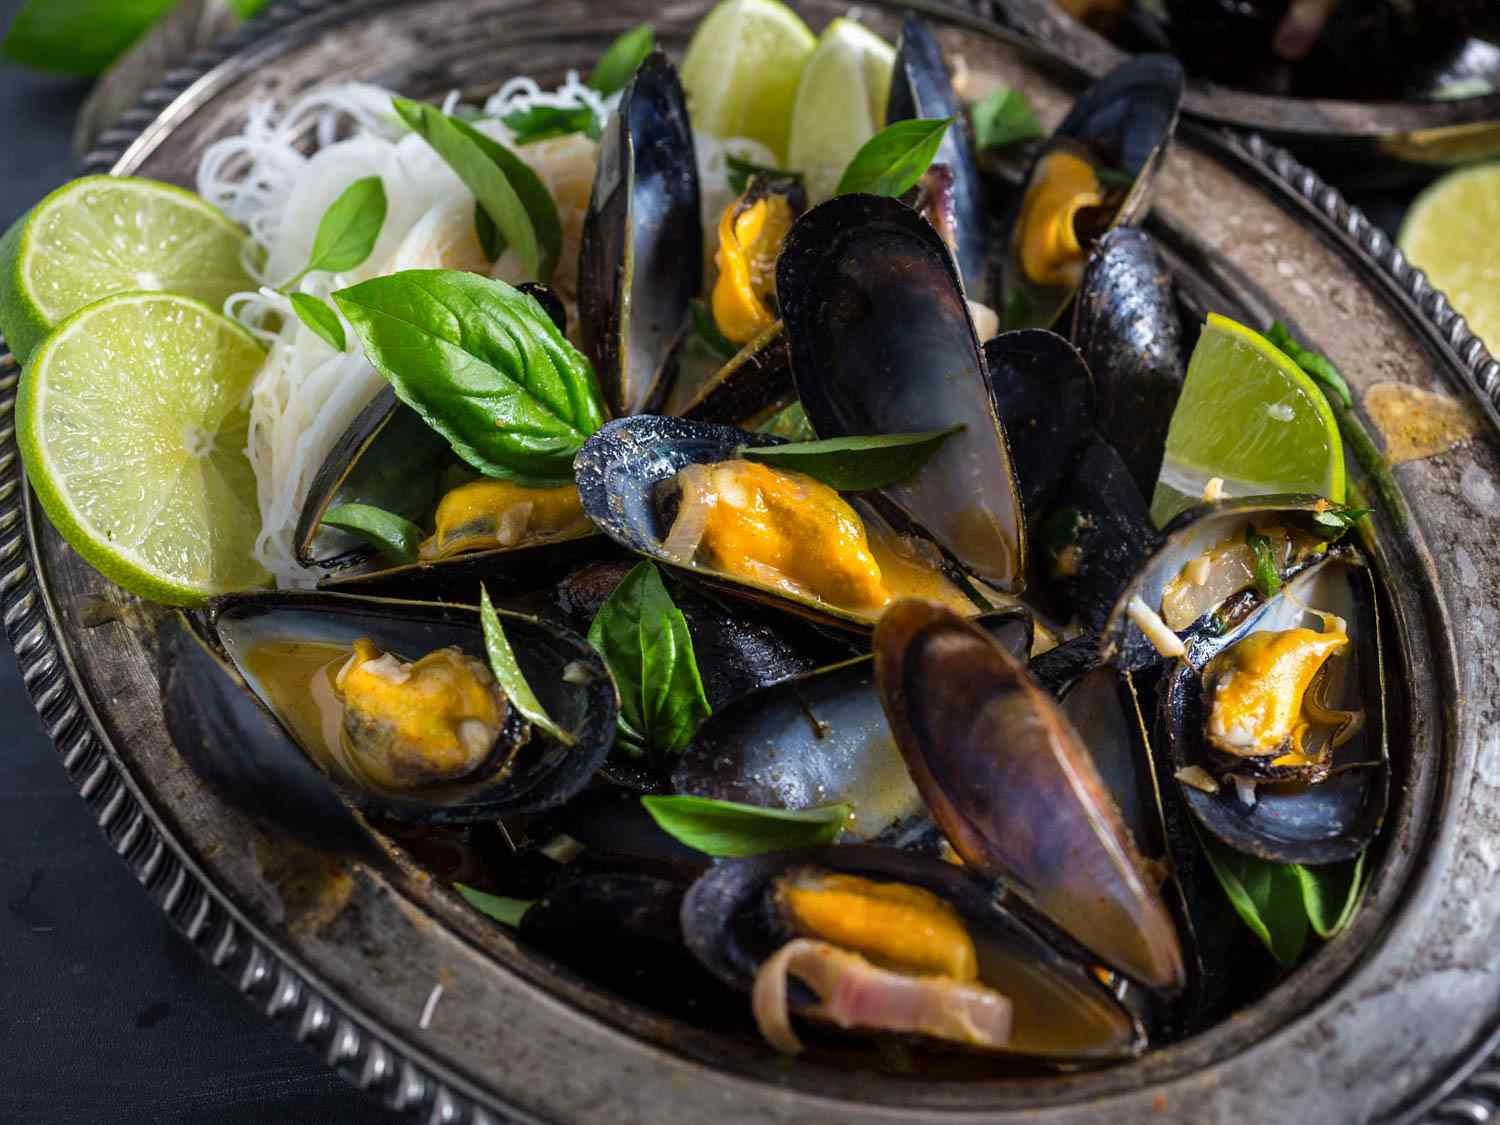 20160723-Mussels-Thai-Red-Curry-Broth-Rice-Noodles-emily-matt-clifton-15.jpg